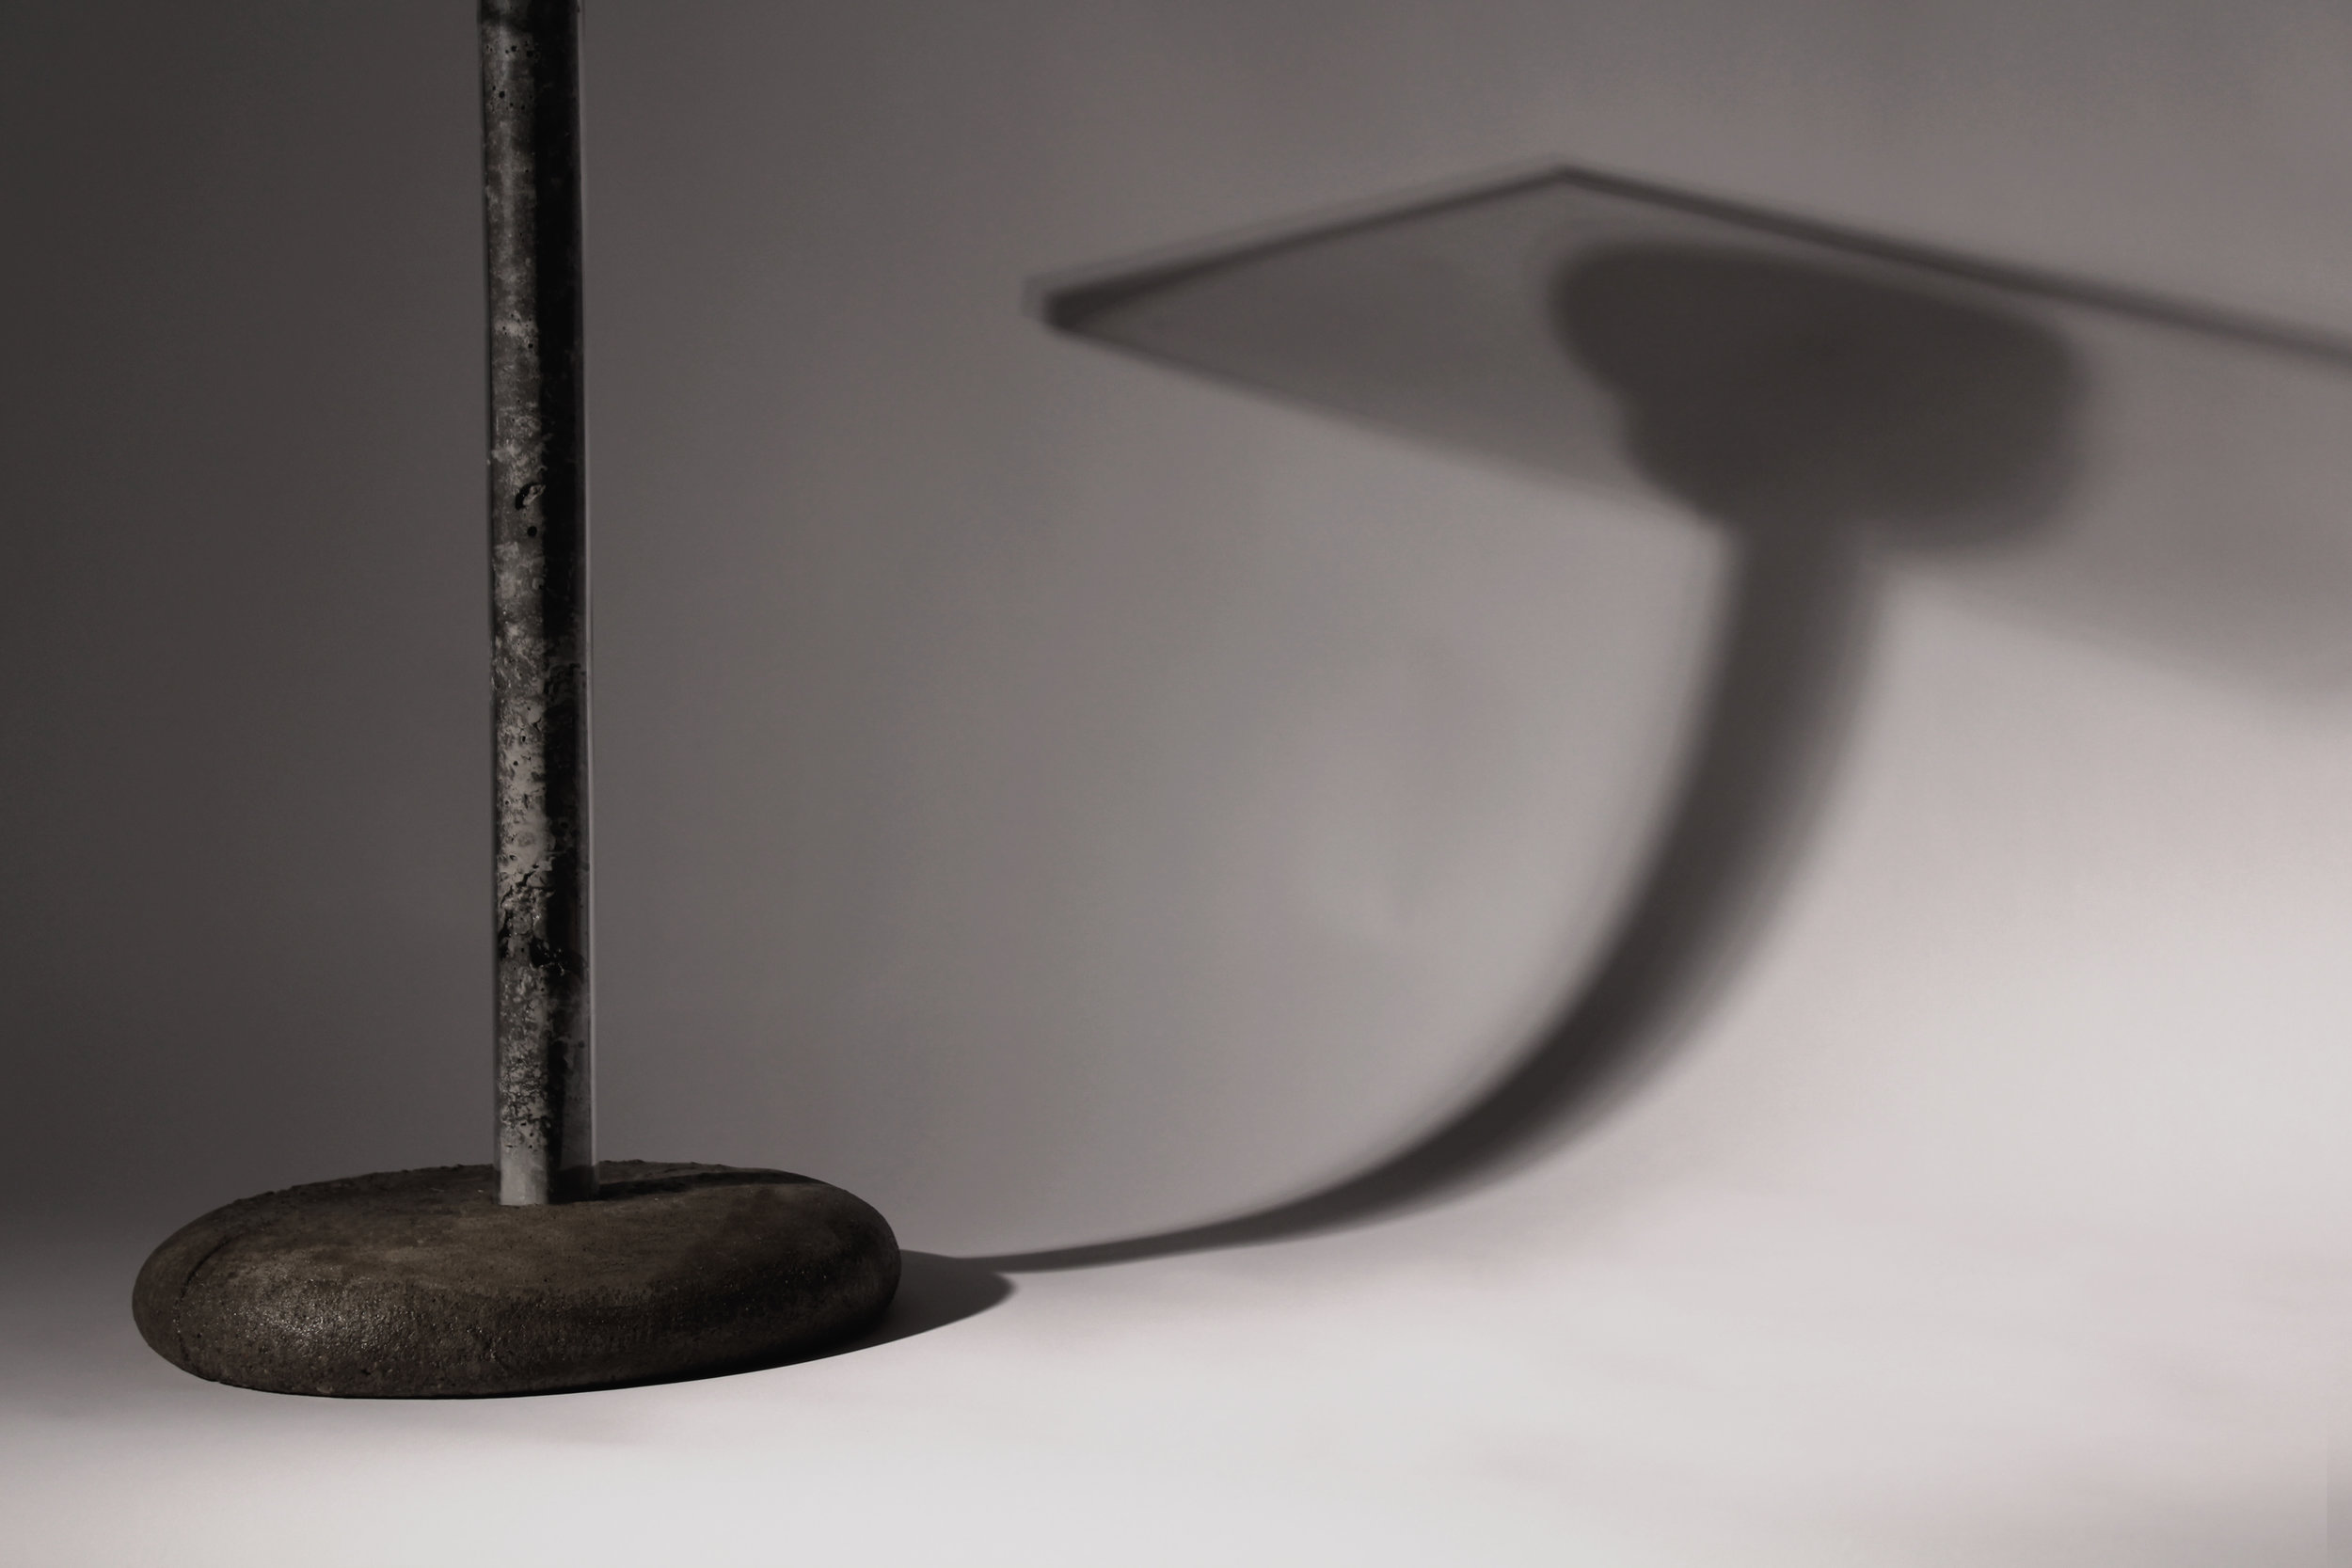 The weight of concrete is activated to create a base for the pedestal table